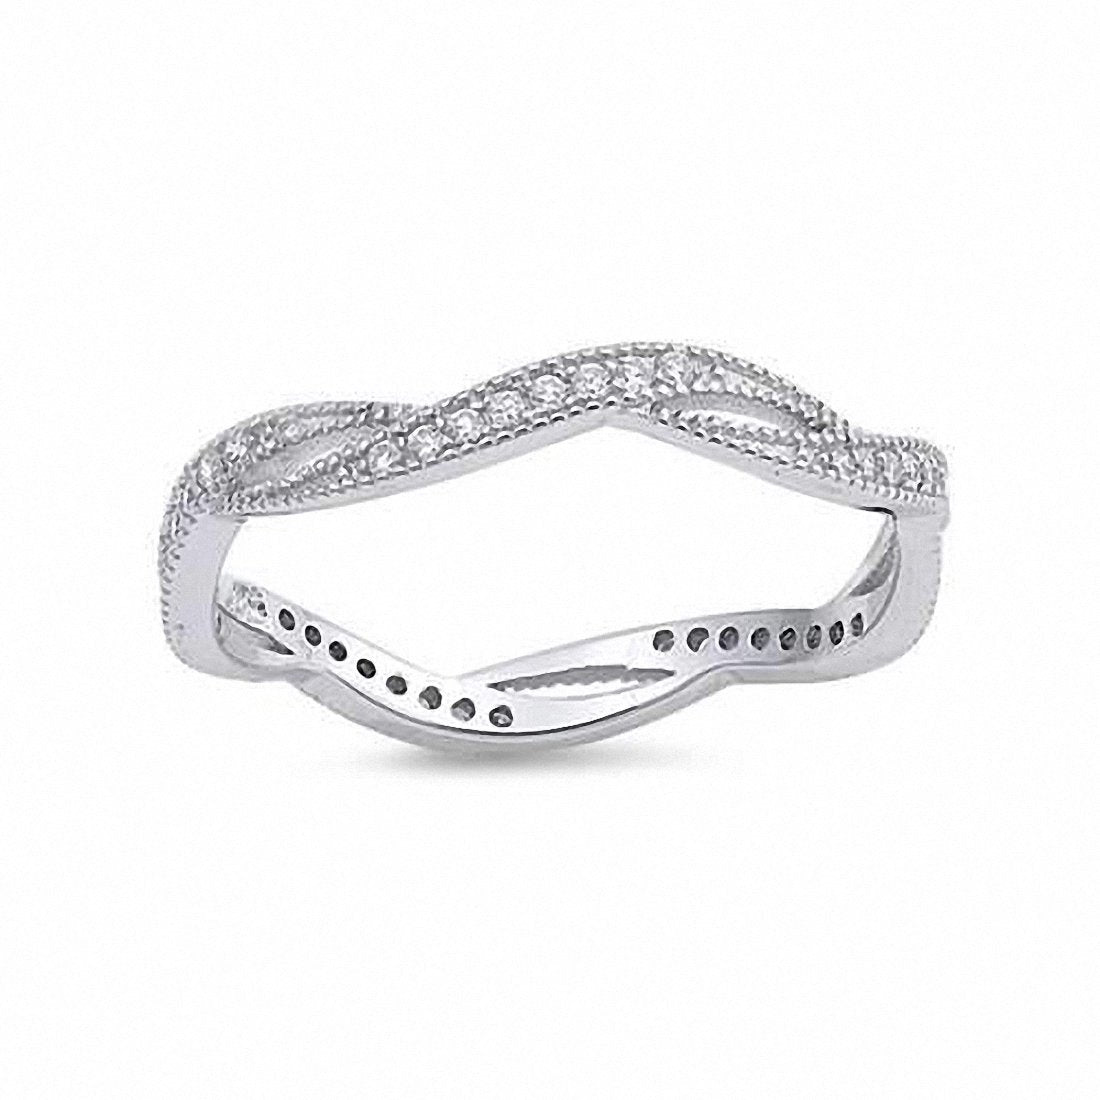 Twisted Braided Full Eternity Infinity Design Band Cubic Zirconia 925 Sterling Silver Choose Color